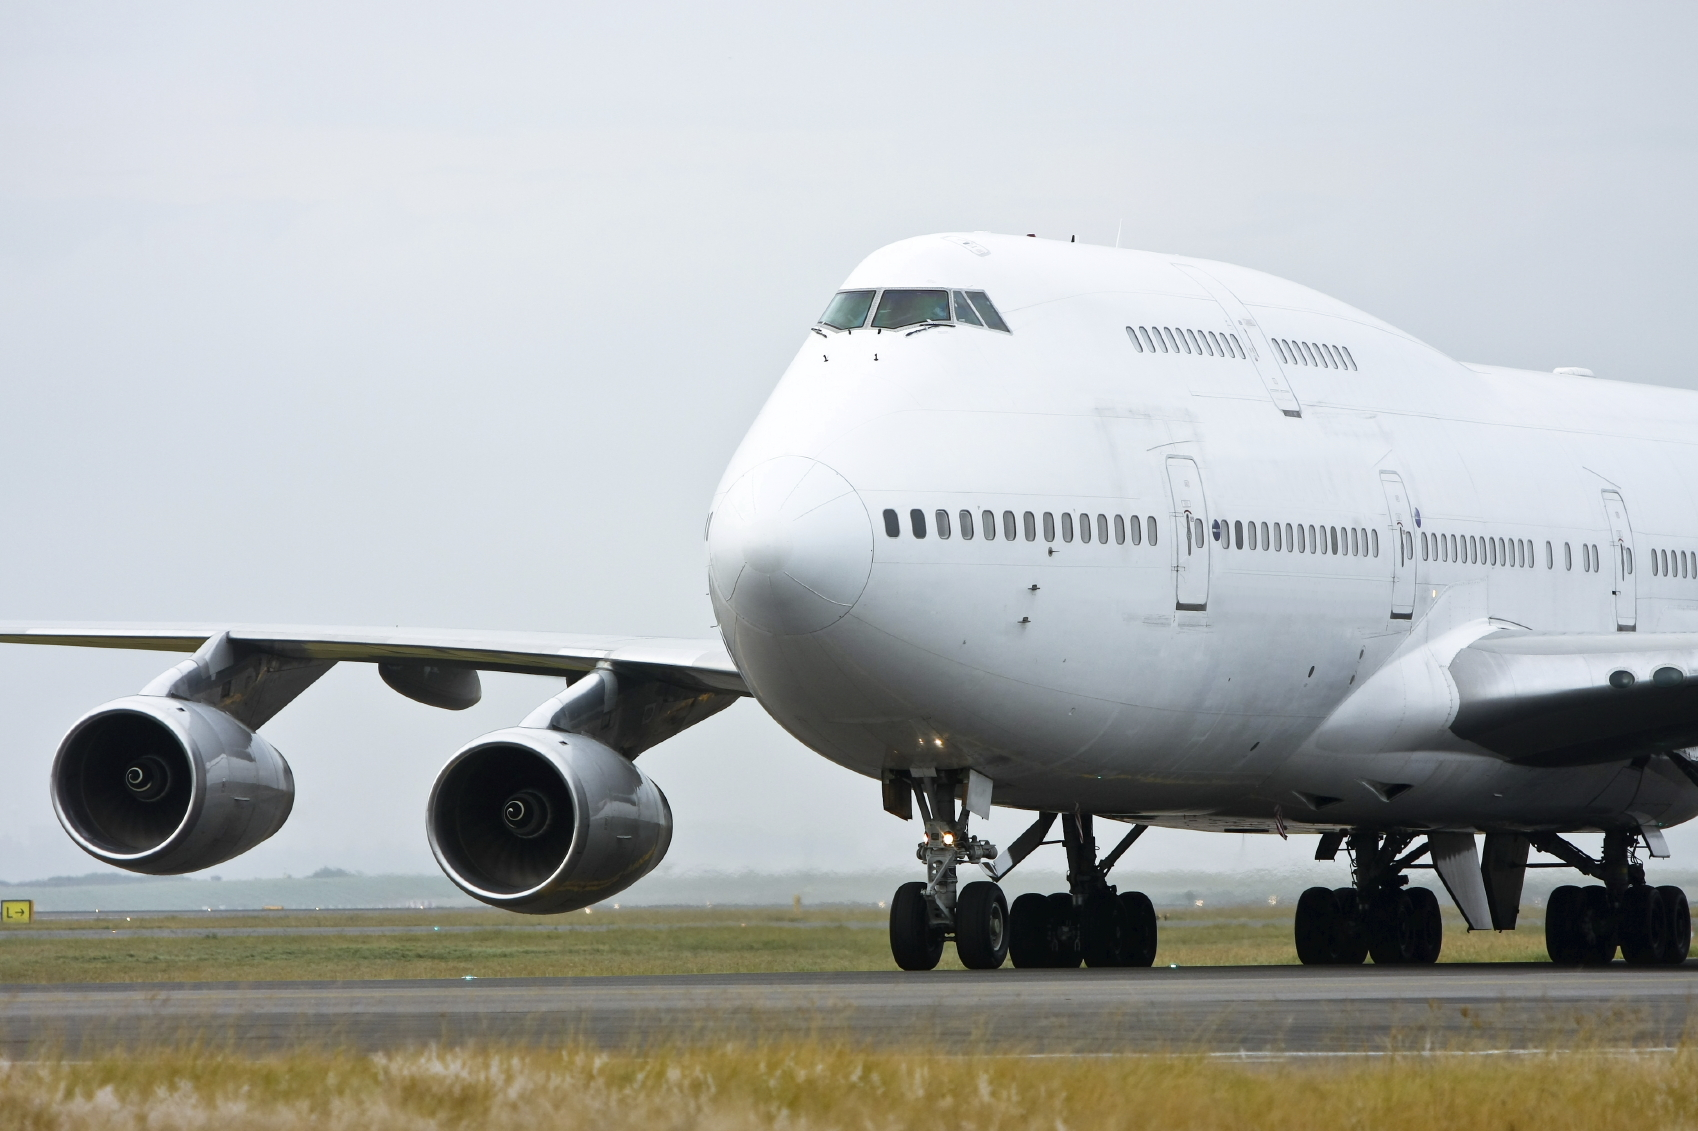 Boeing 747 on the runway